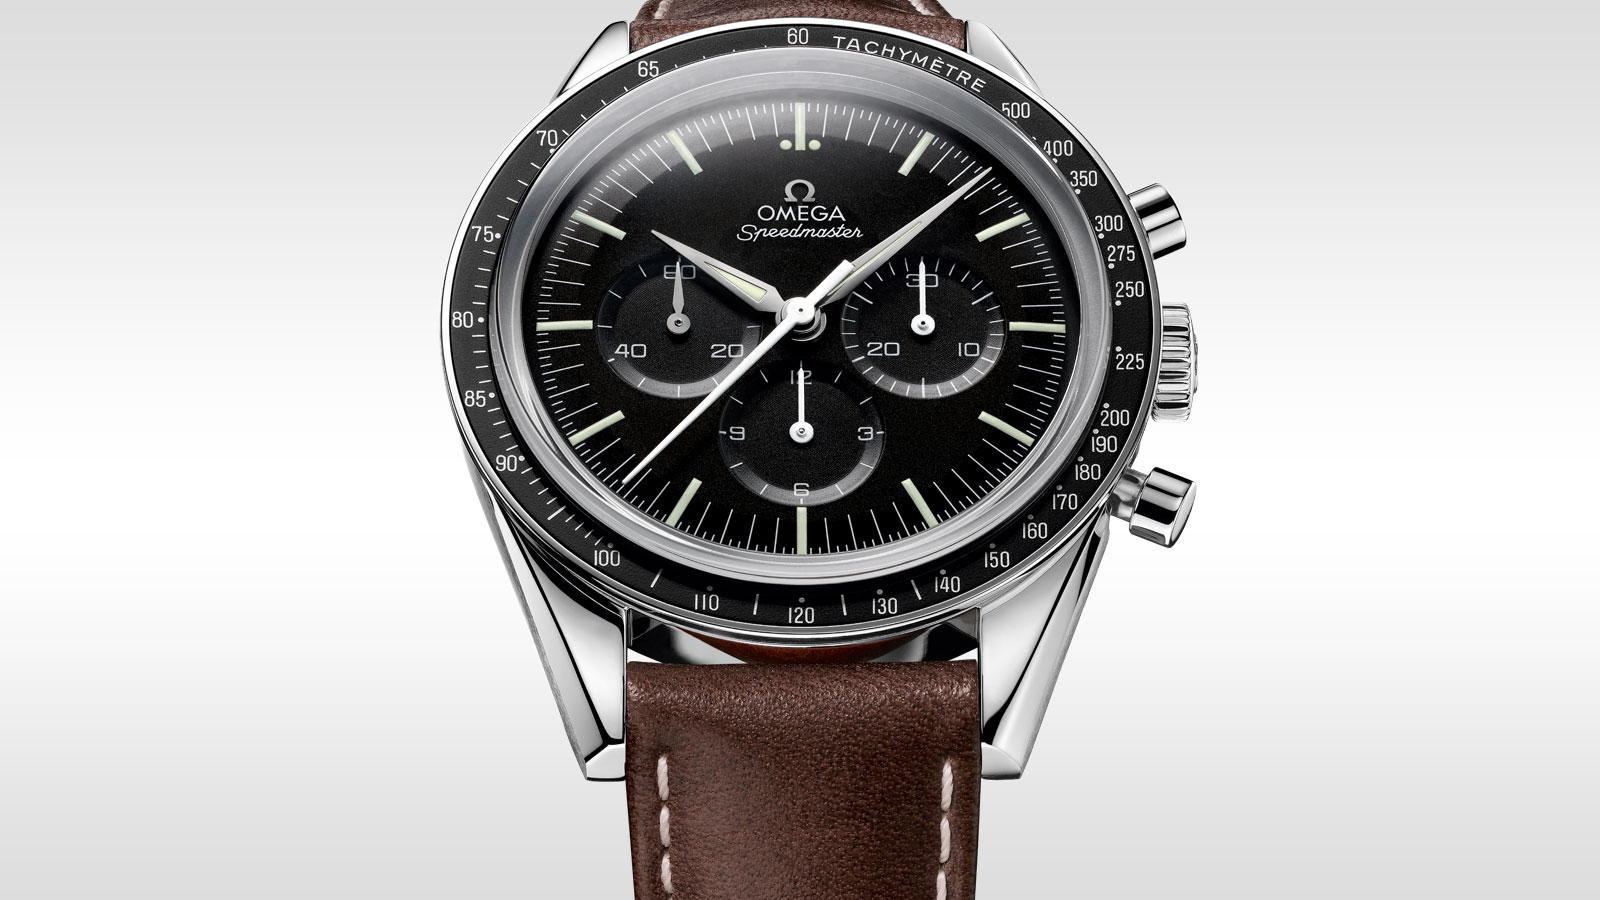 Speedmaster Moonwatch Moonwatch Chronograph 39.7 mm - 311.32.40.30.01.002 - View 2